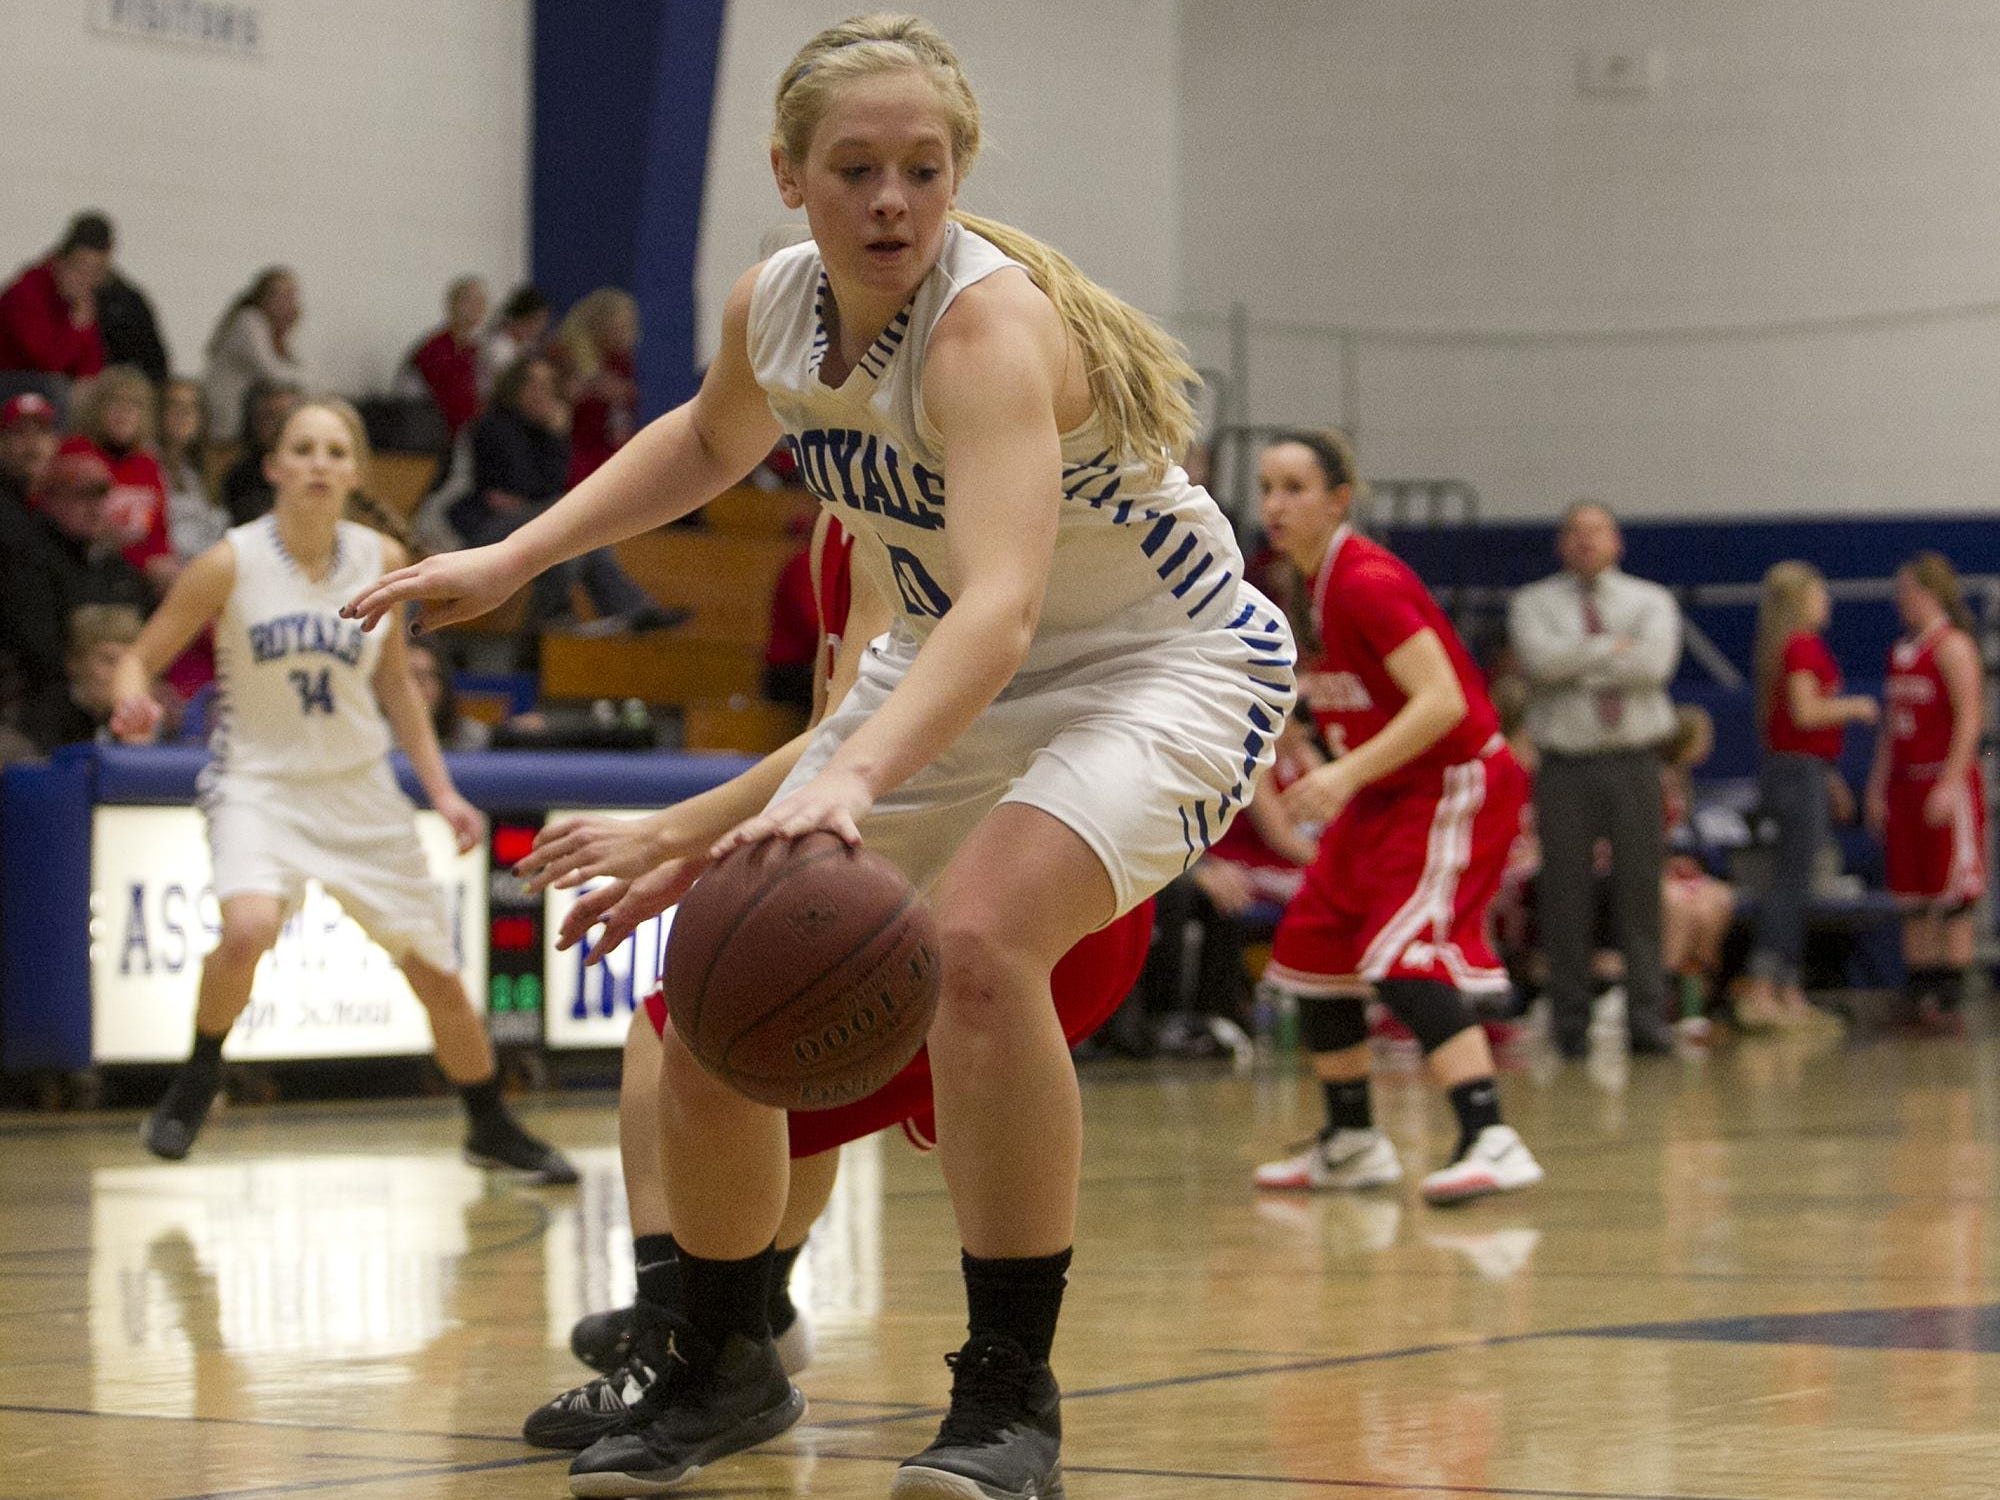 Assumption's Macyn Krings dribbles the ball Tuesday during the first half of a Marawood Conference girls basketball game at Assumption High School in Wisconsin Rapids.